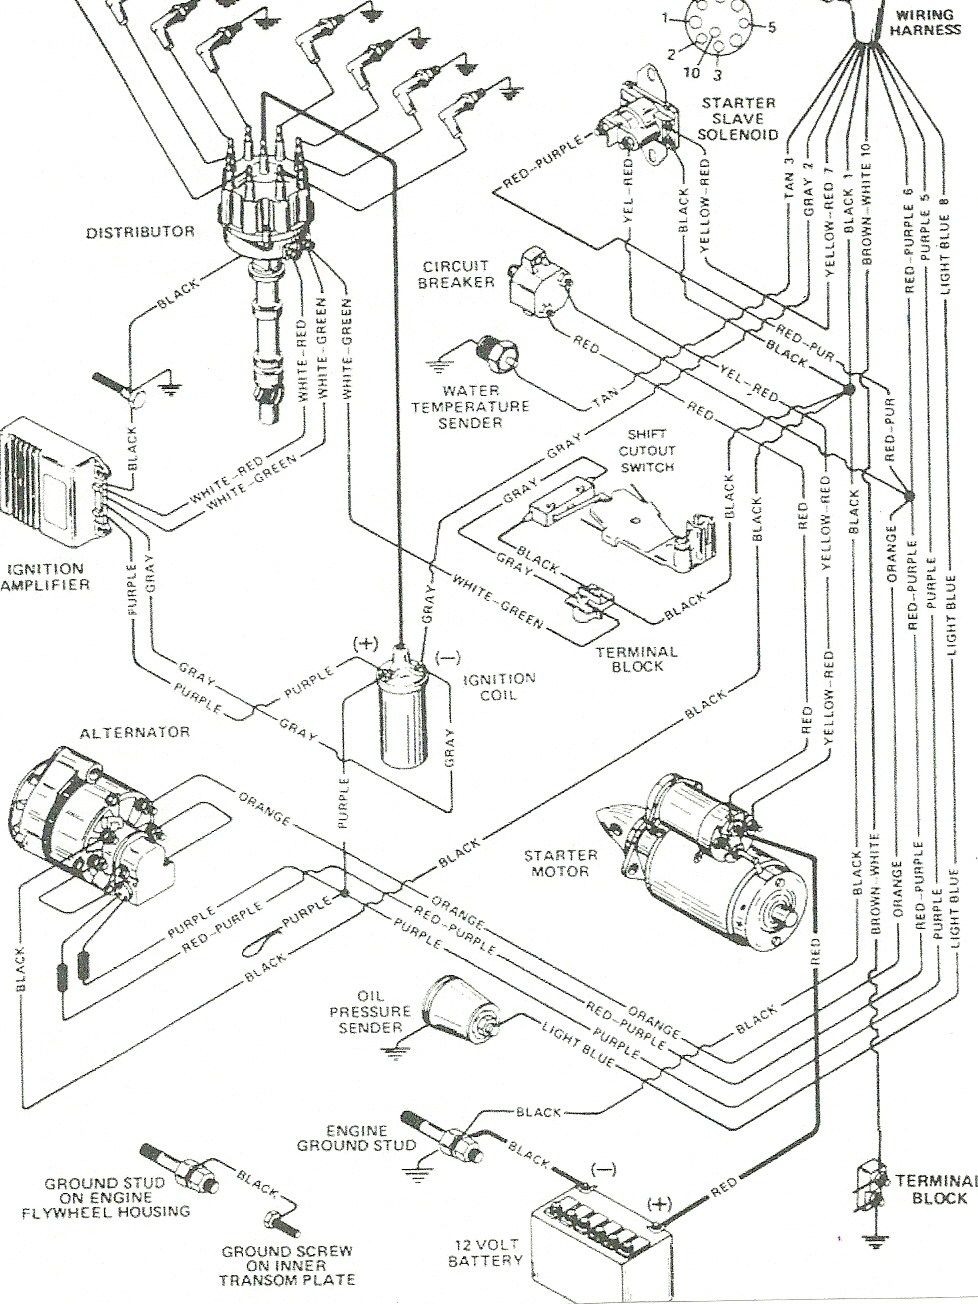 Mercruiser Wiring Diagrams | Wiring Liry on 3.0 mercruiser solenoid, 3.0 mercruiser fittings, 3.0 mercruiser air cleaner, 3.0 mercruiser harmonic balancer, 3.0 mercruiser fuel line, 3.0 mercruiser sensor, 3.0 mercruiser coil,